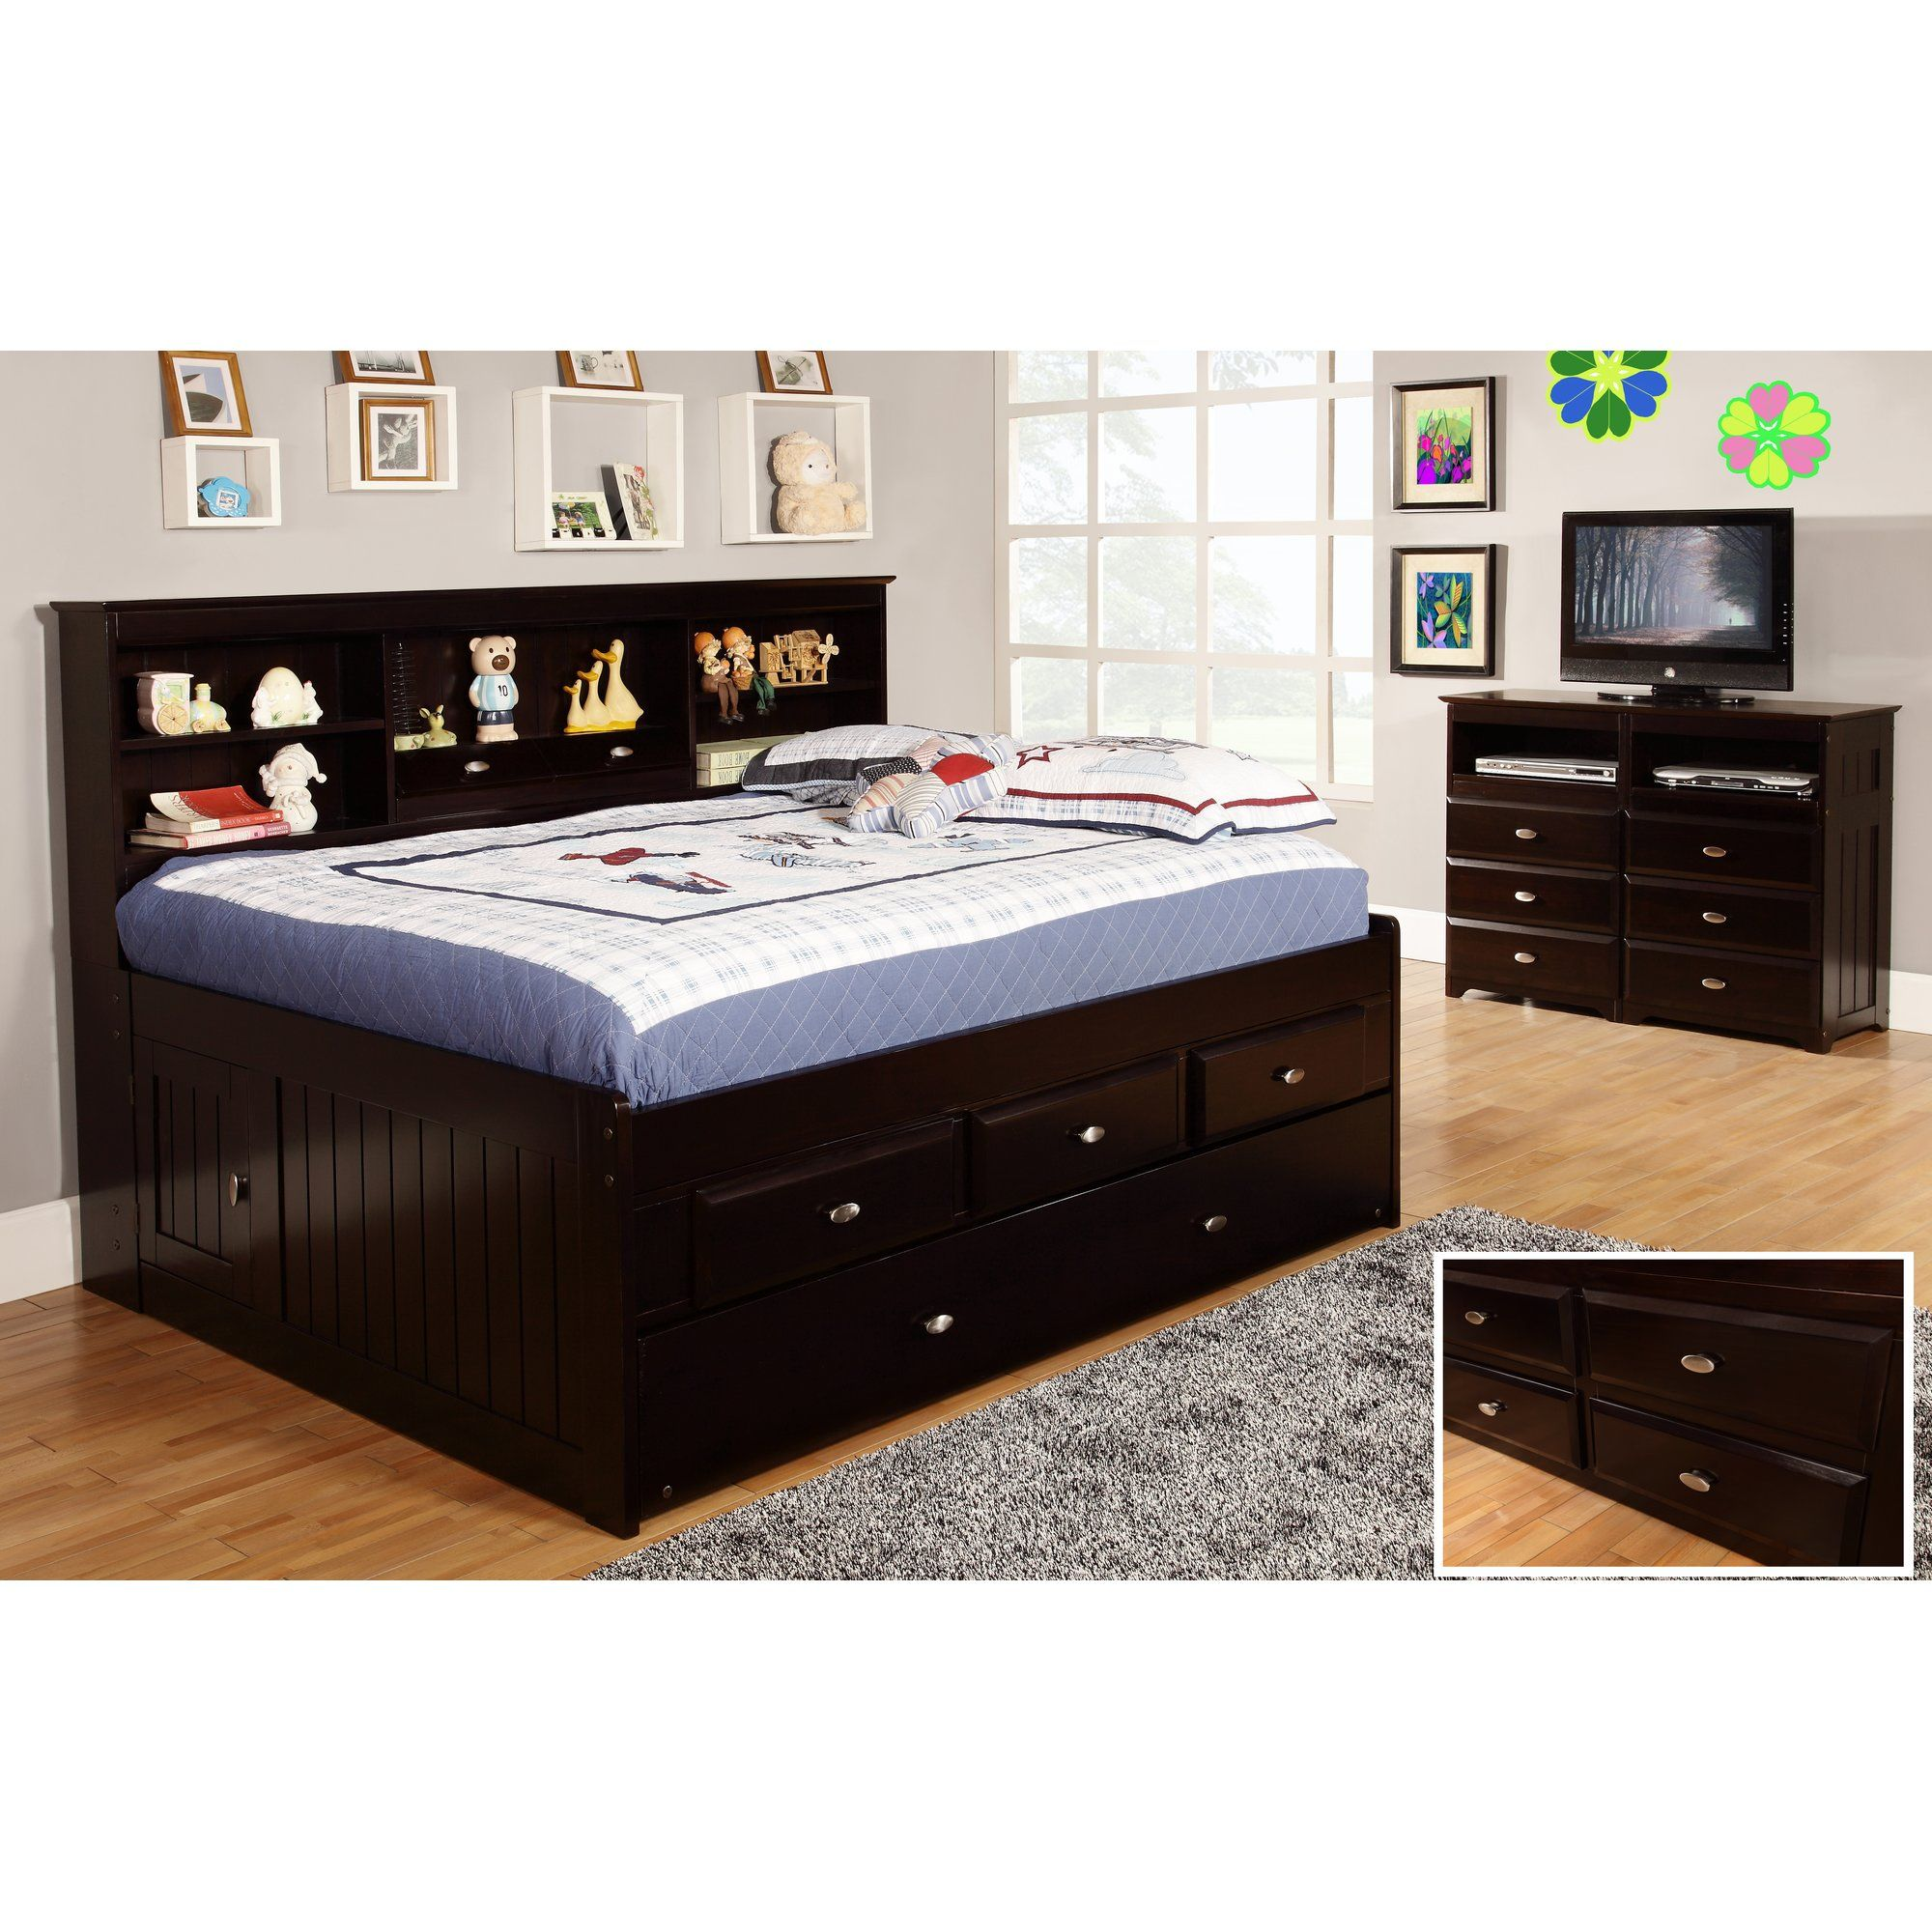 Kaitlyn Mate's & Captain's Bed with Trundle Furniture